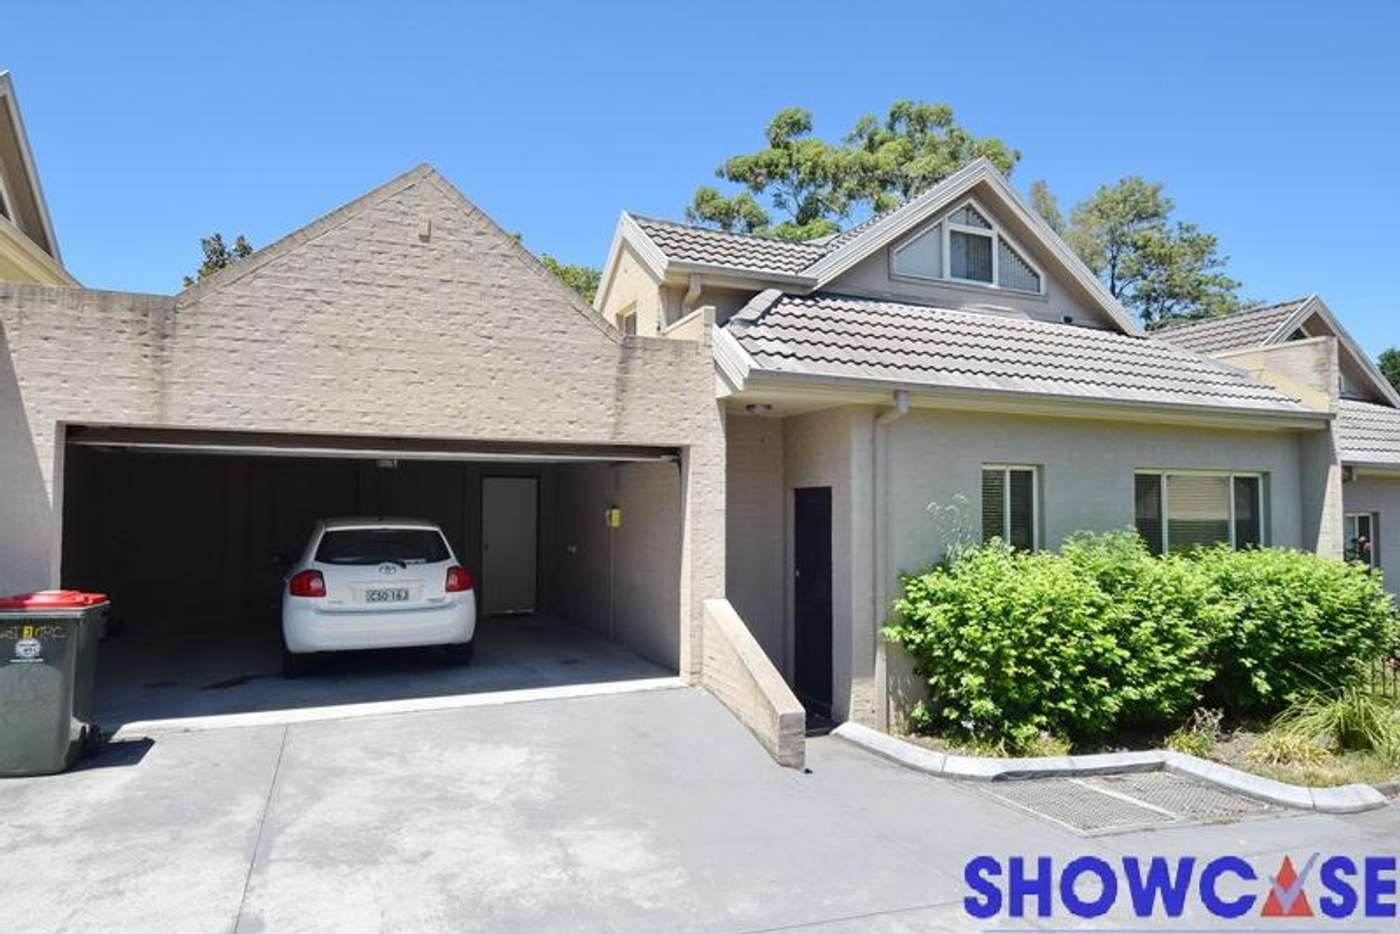 Main view of Homely townhouse listing, 3/10-12 Donald Street, Carlingford NSW 2118